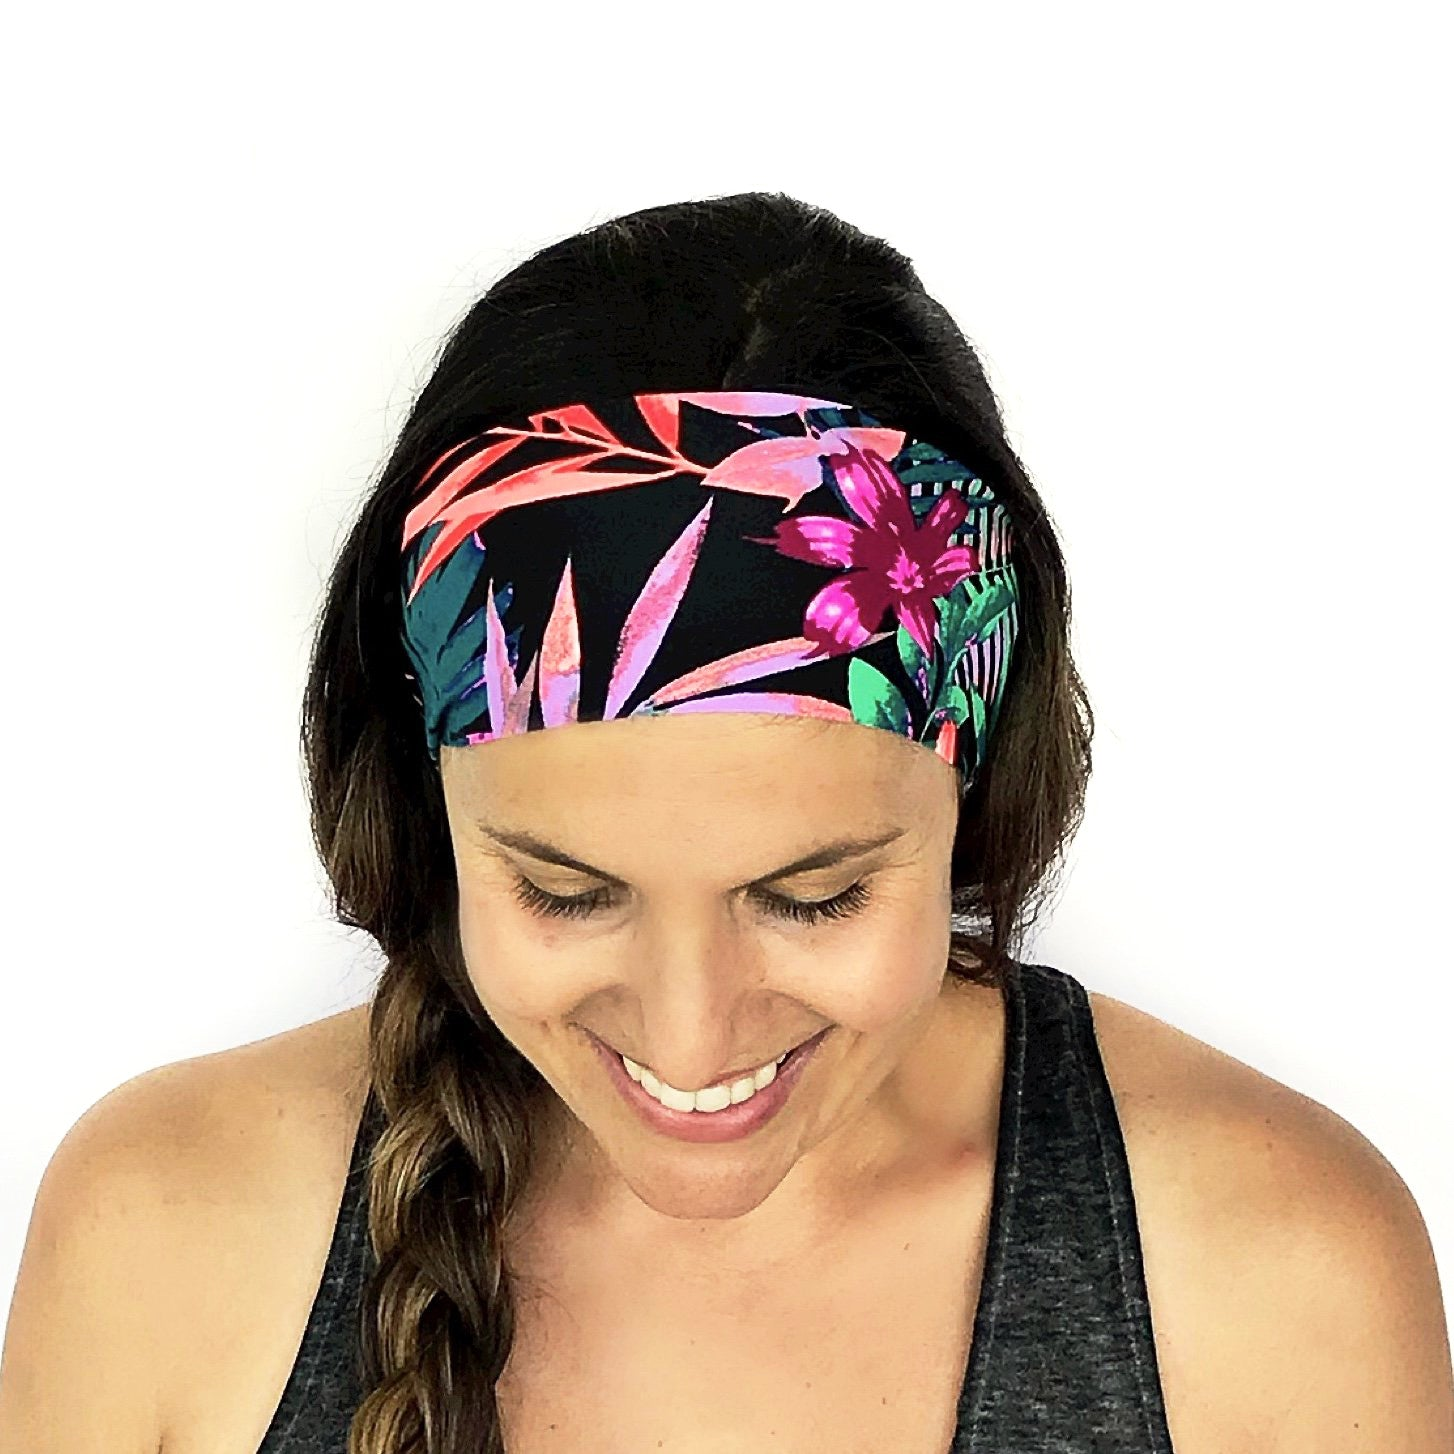 Cozumel Workout Headband